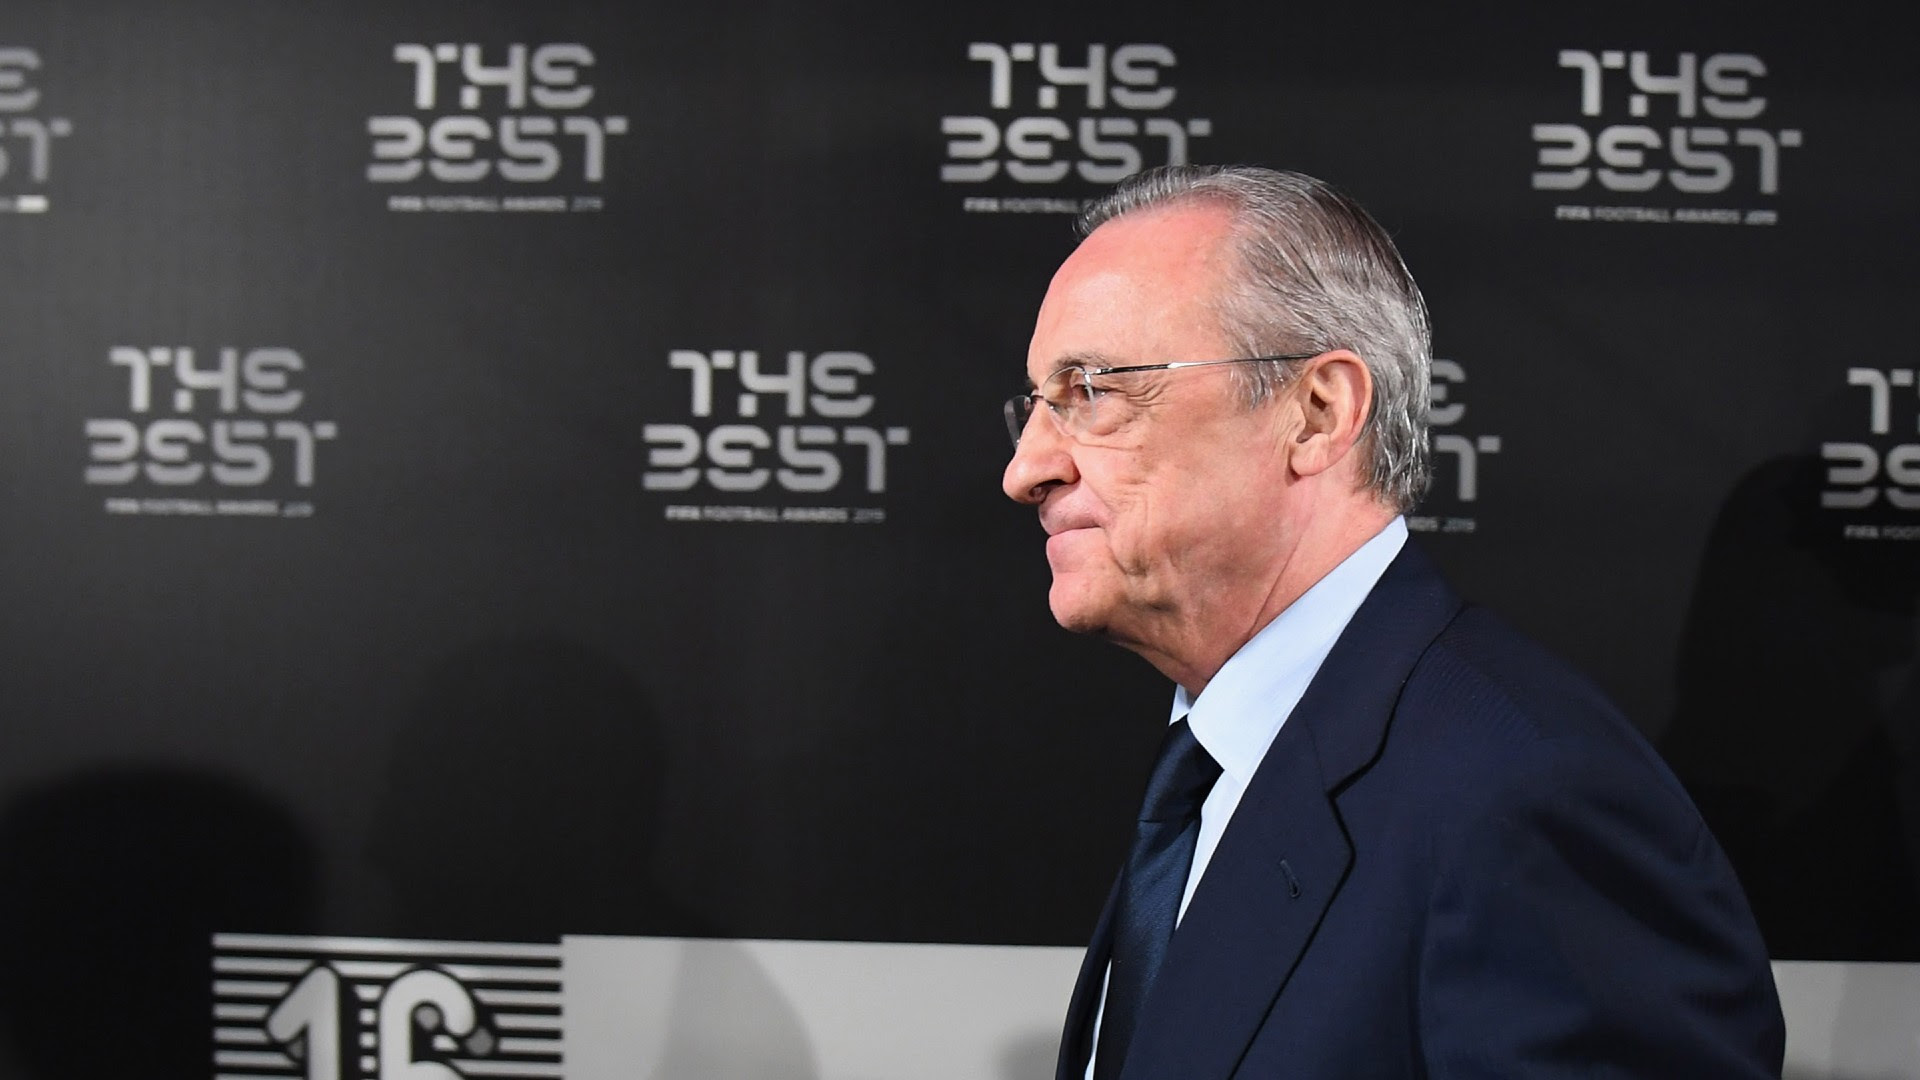 Real Madrid president Perez says Super League clubs 'trying to save football' - but admits 'we did not explain it well'